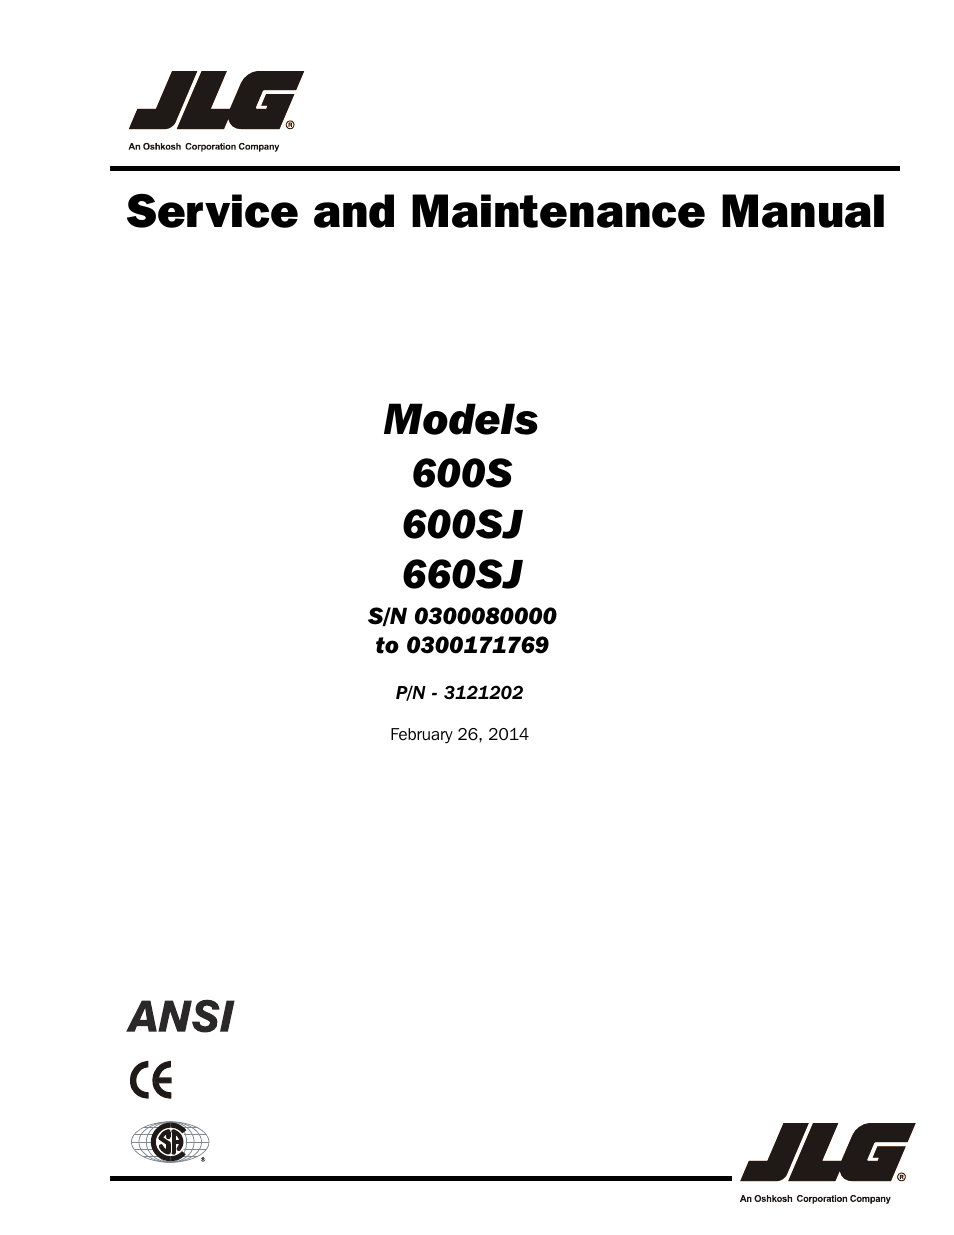 JLG 660SJ Service Manual User Manual | 334 pages | Also for: 600S_SJ  Service ManualManuals Directory